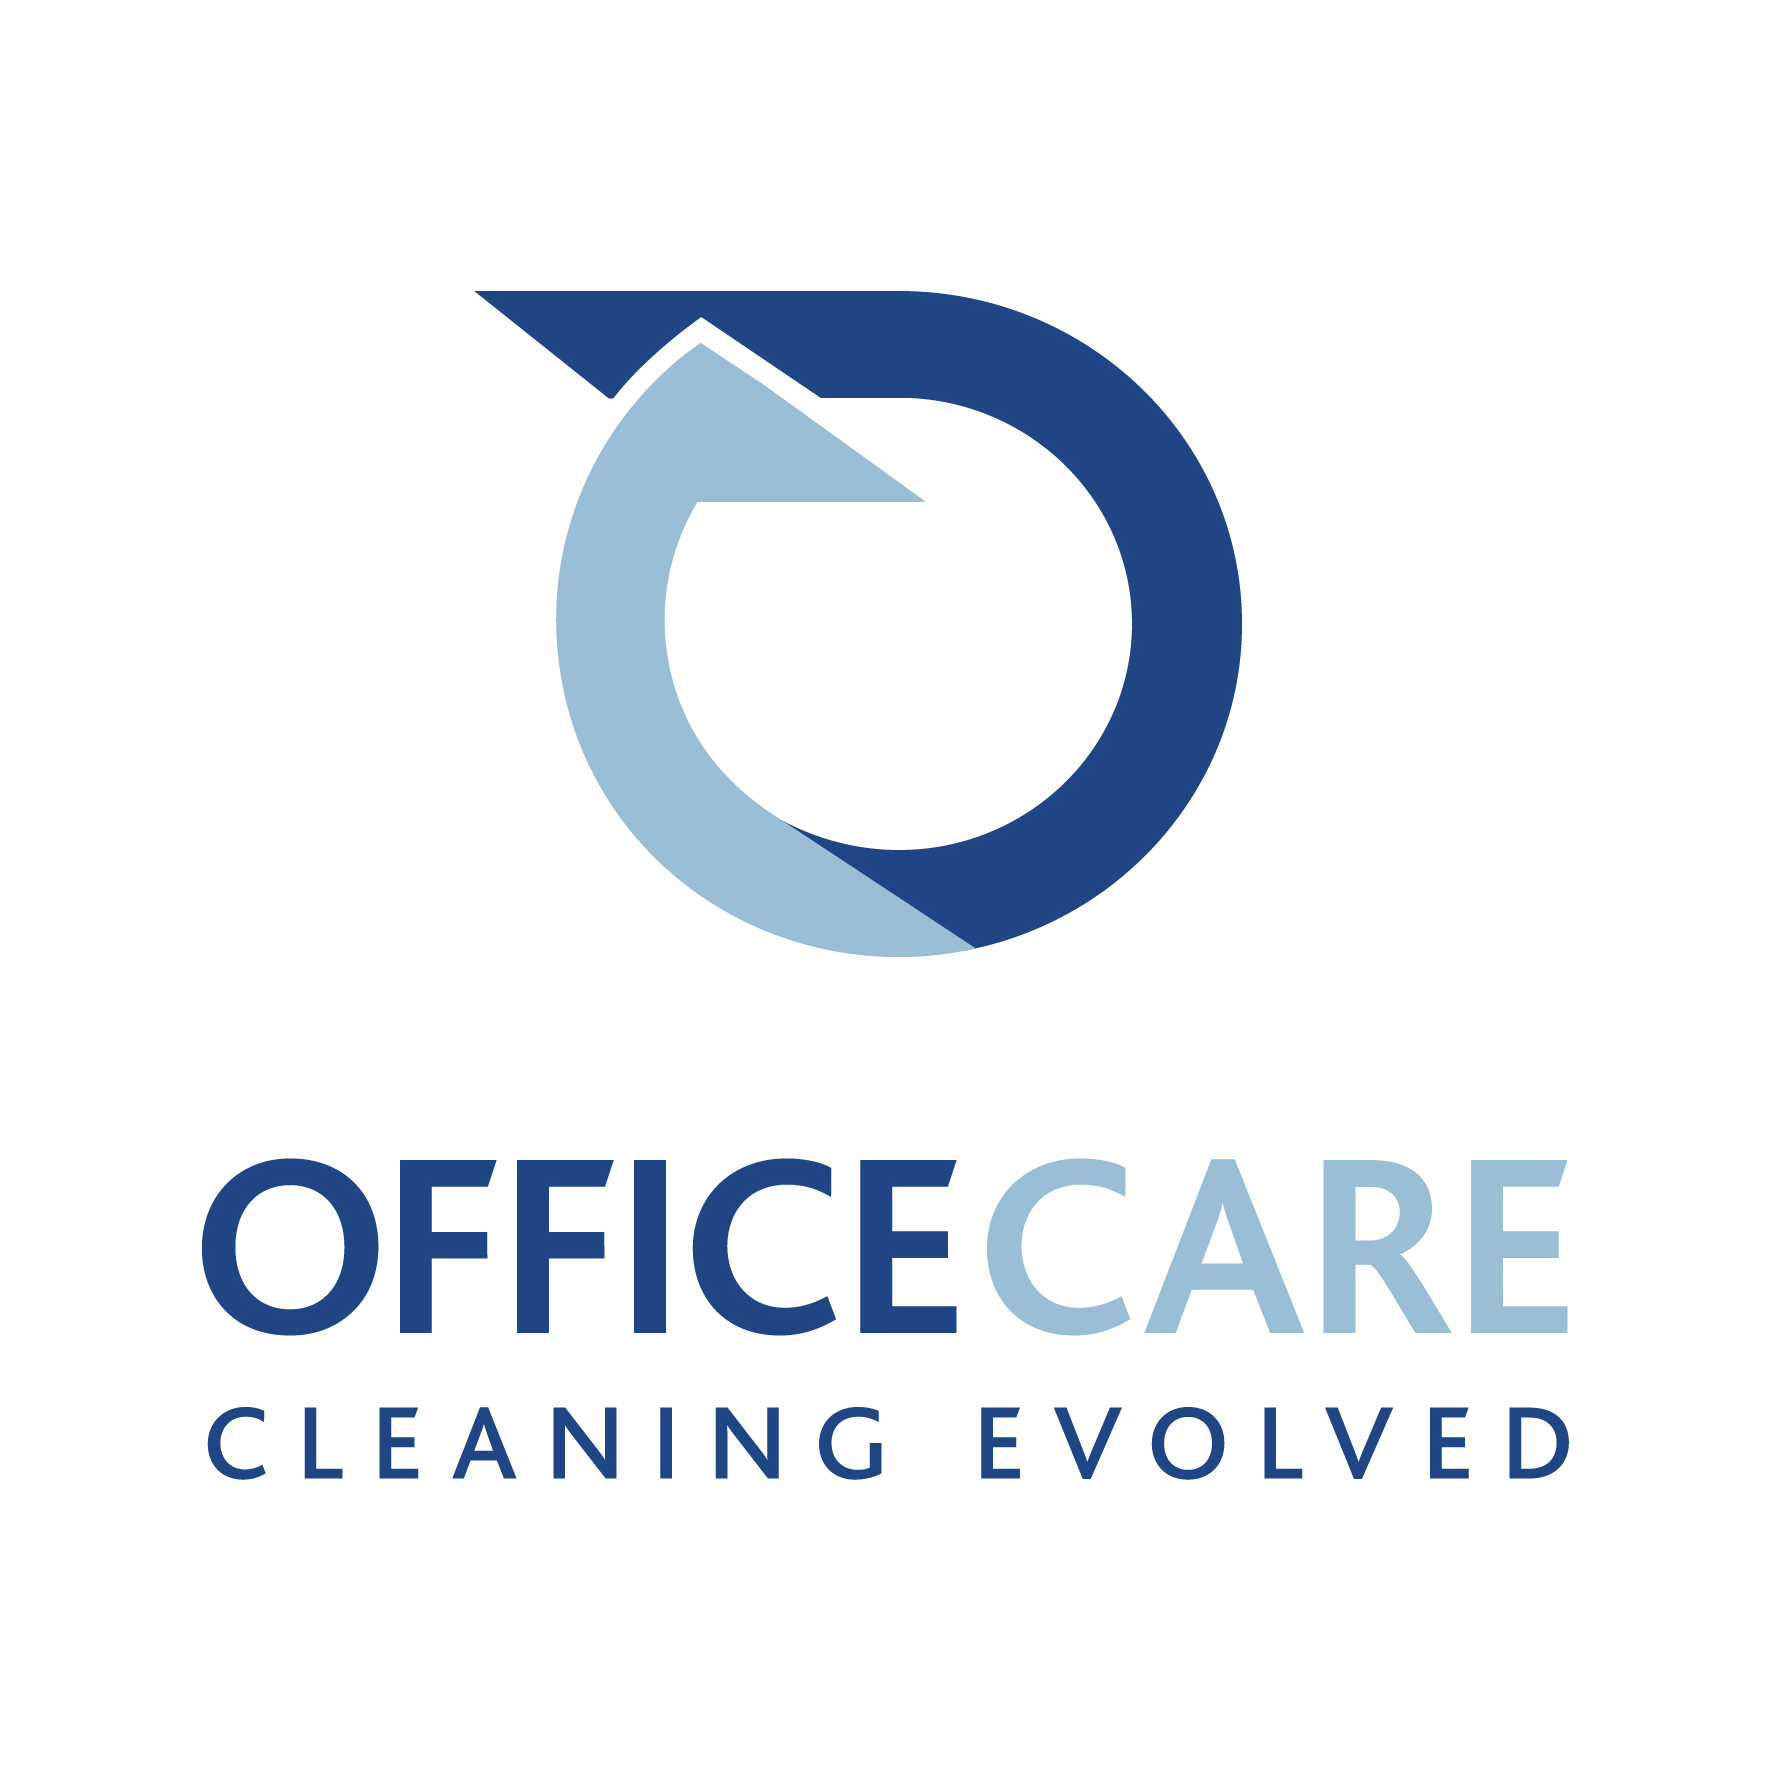 officecare.uk.com Photo